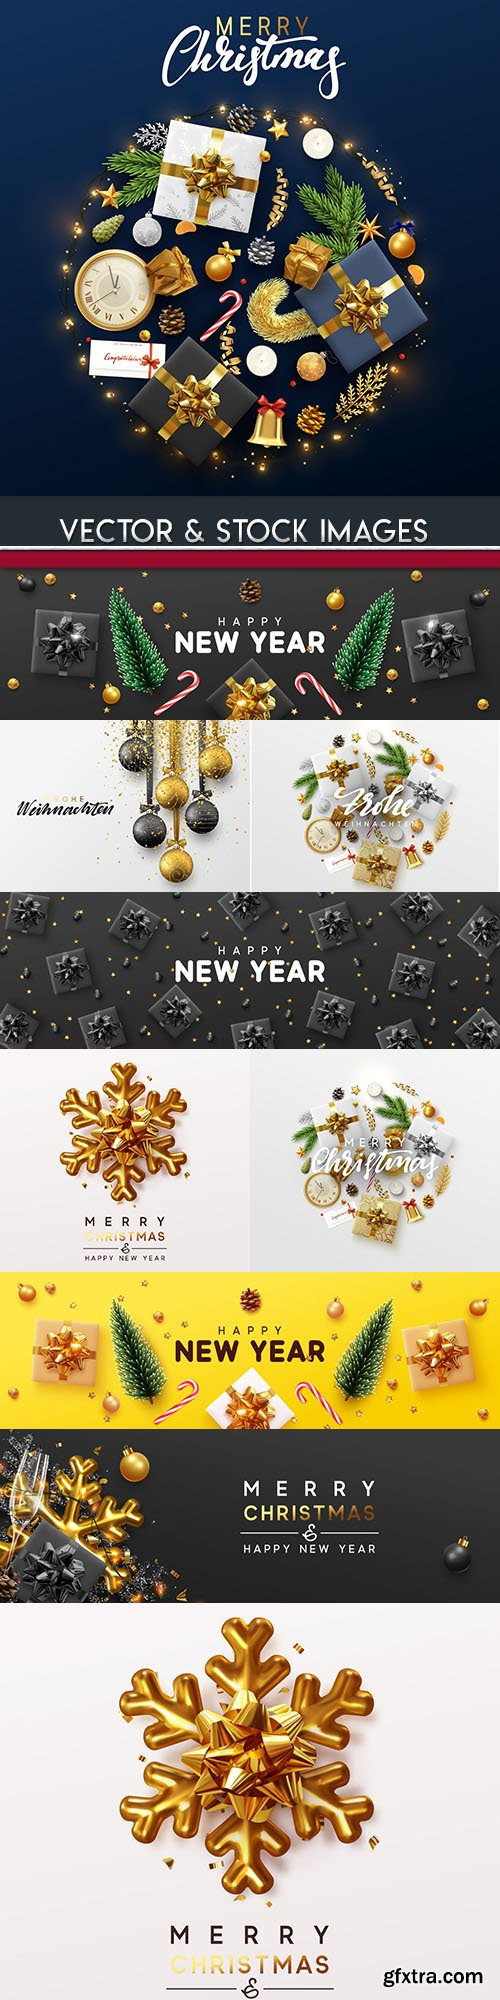 New Year and Christmas decorative design illustration